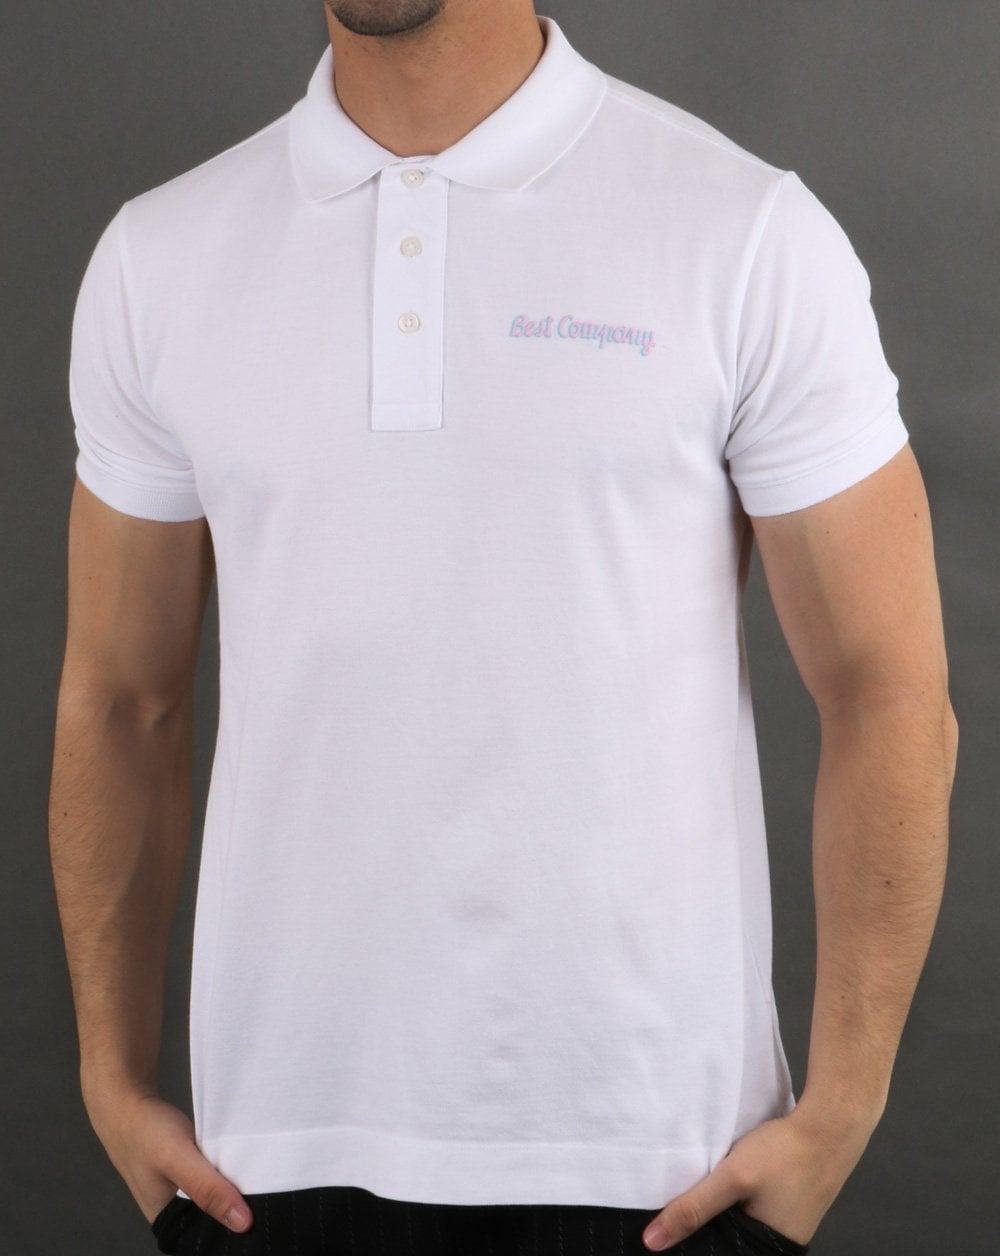 bf218d934 Best Company Best Company Pique Polo Shirt White